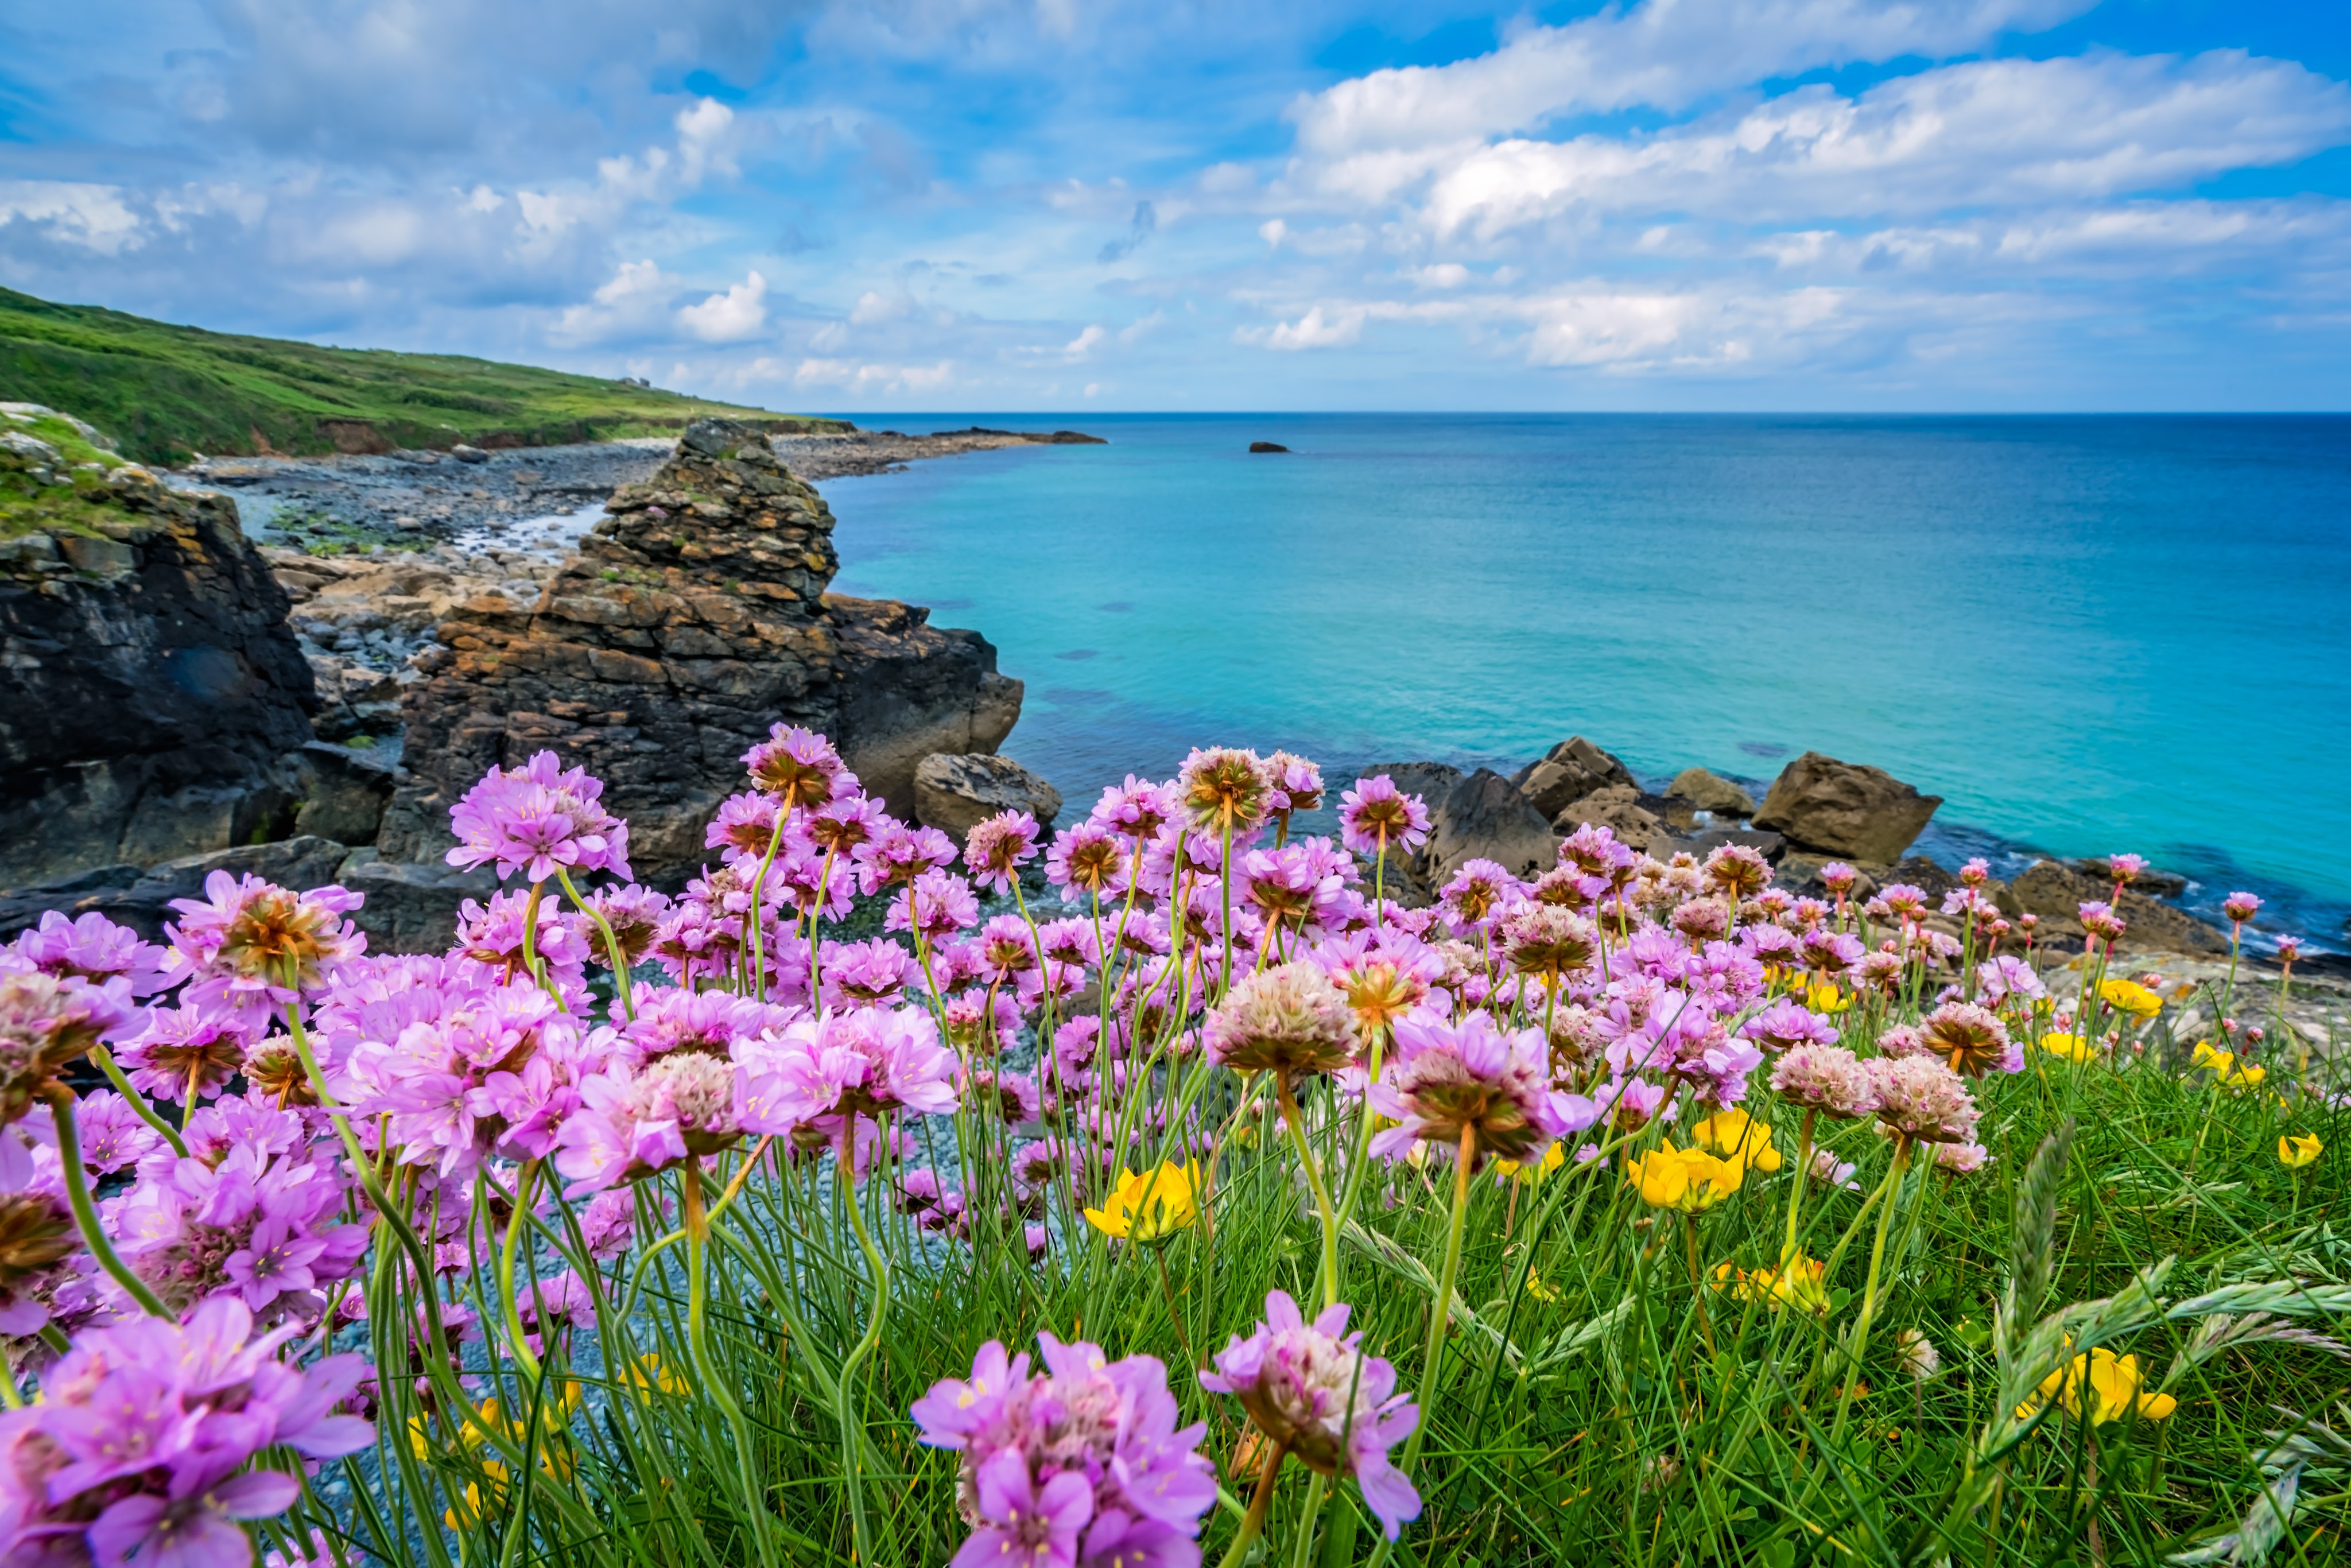 Coastal view with pink flowers in the foreground